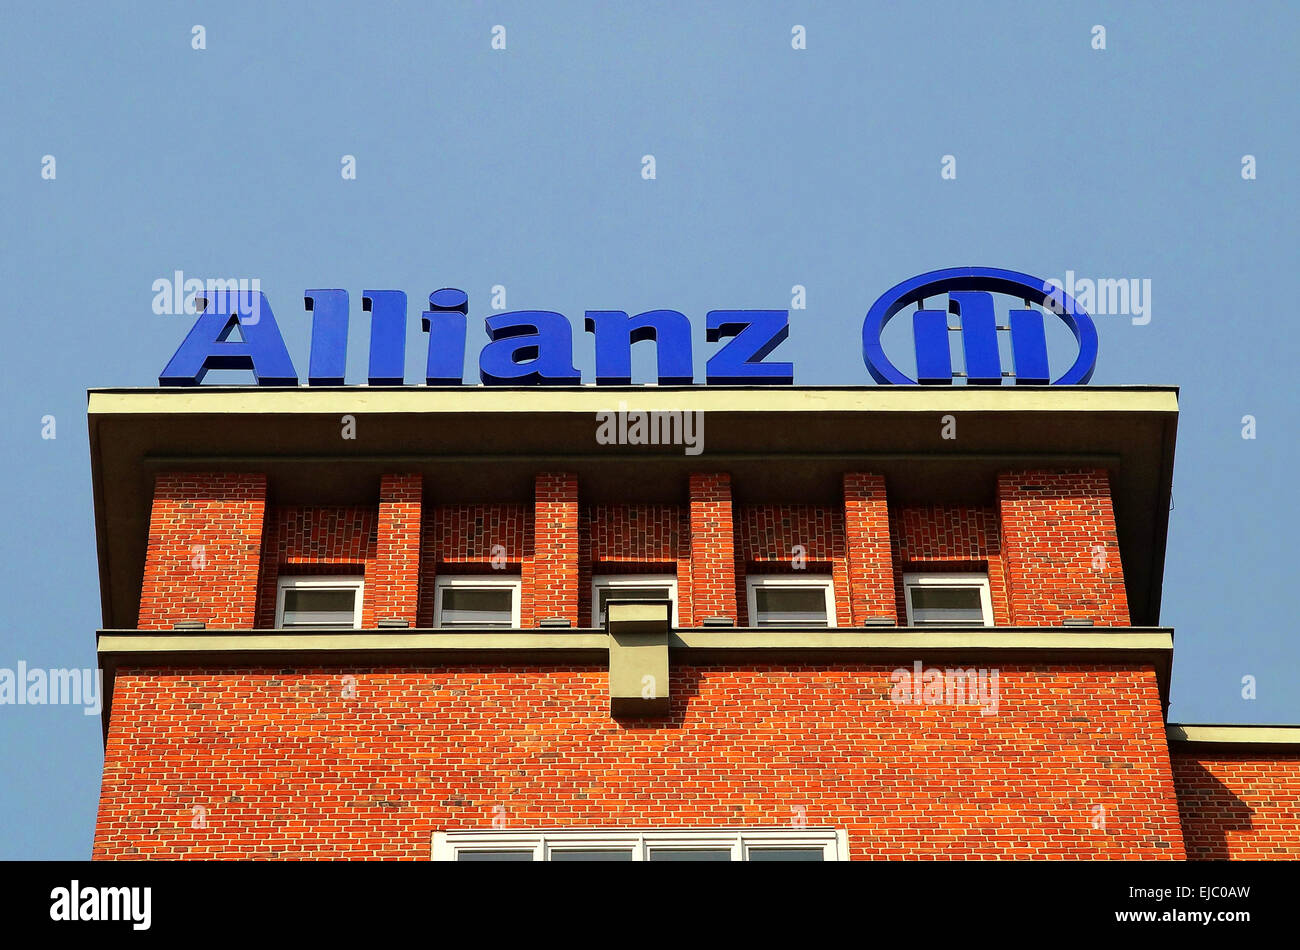 Logo Allianz - Stock Image